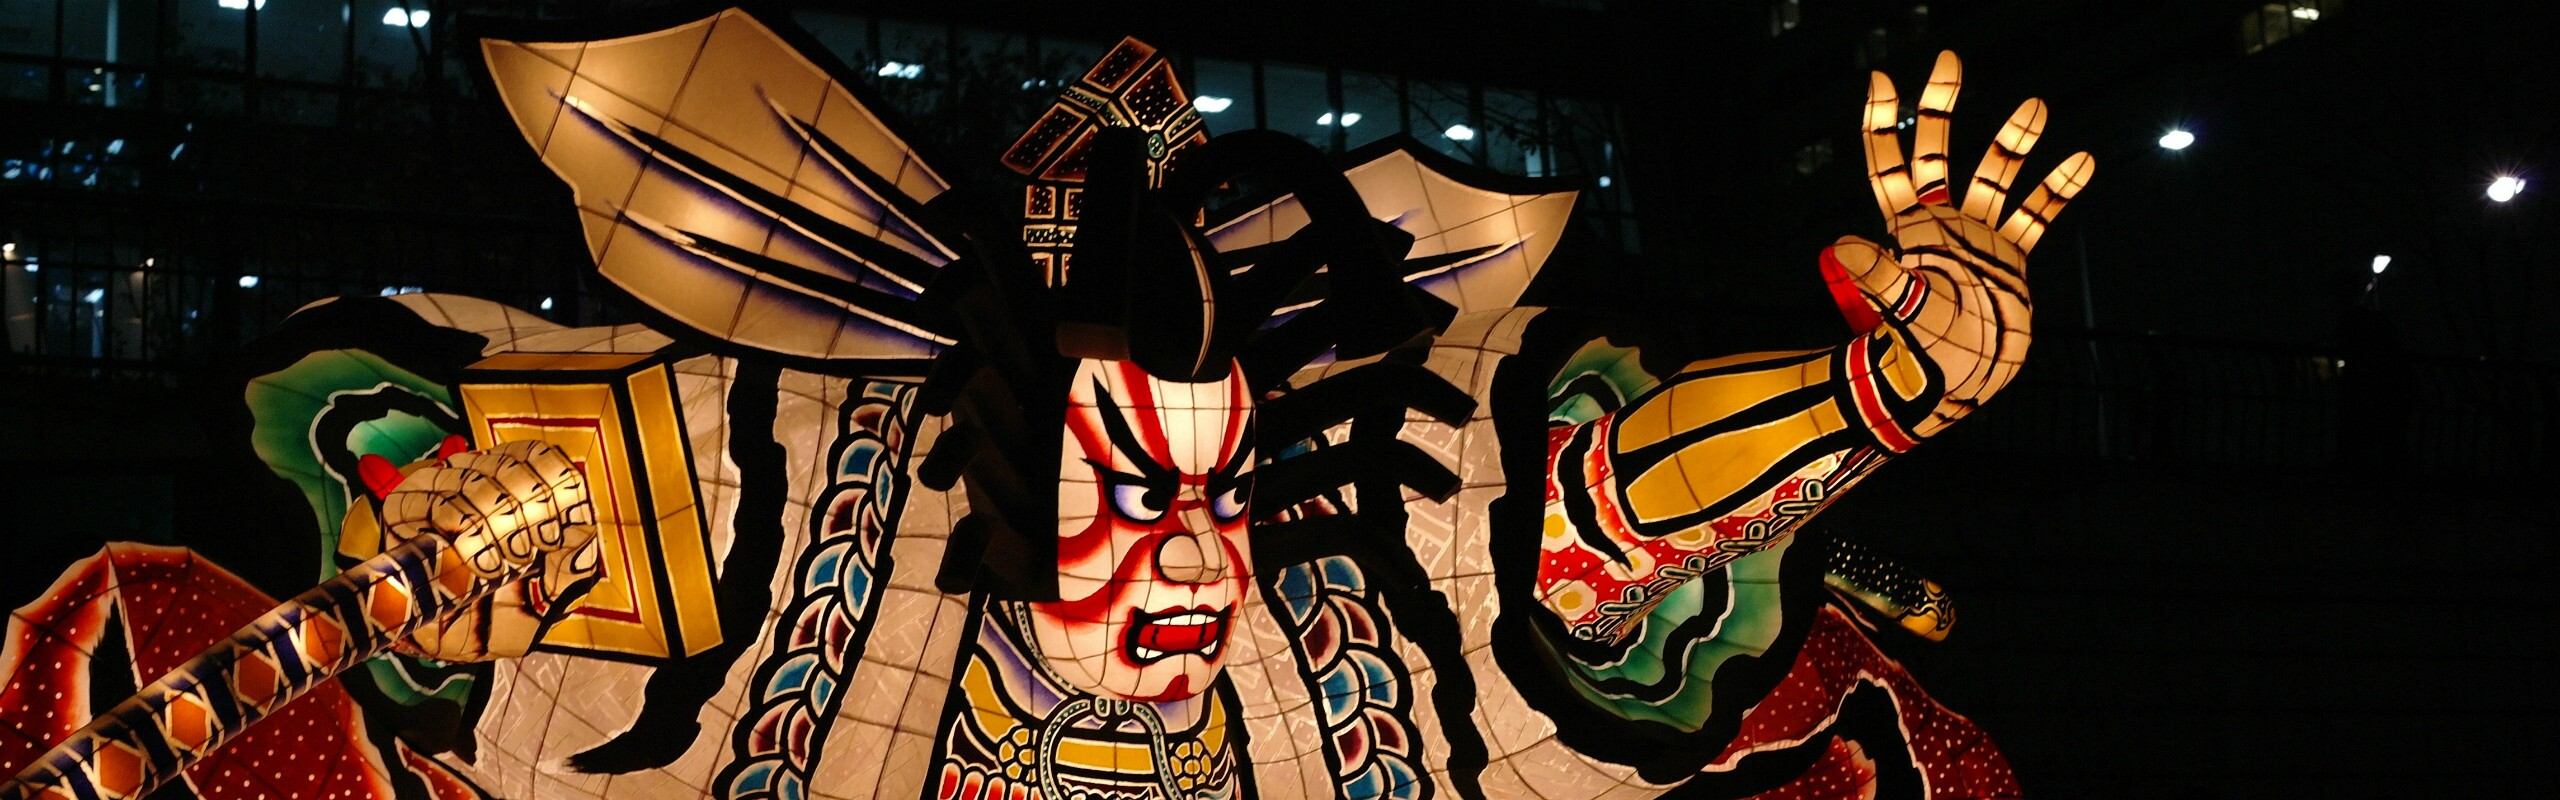 Festivals and Events in Kyoto - What Are The Biggest 3?